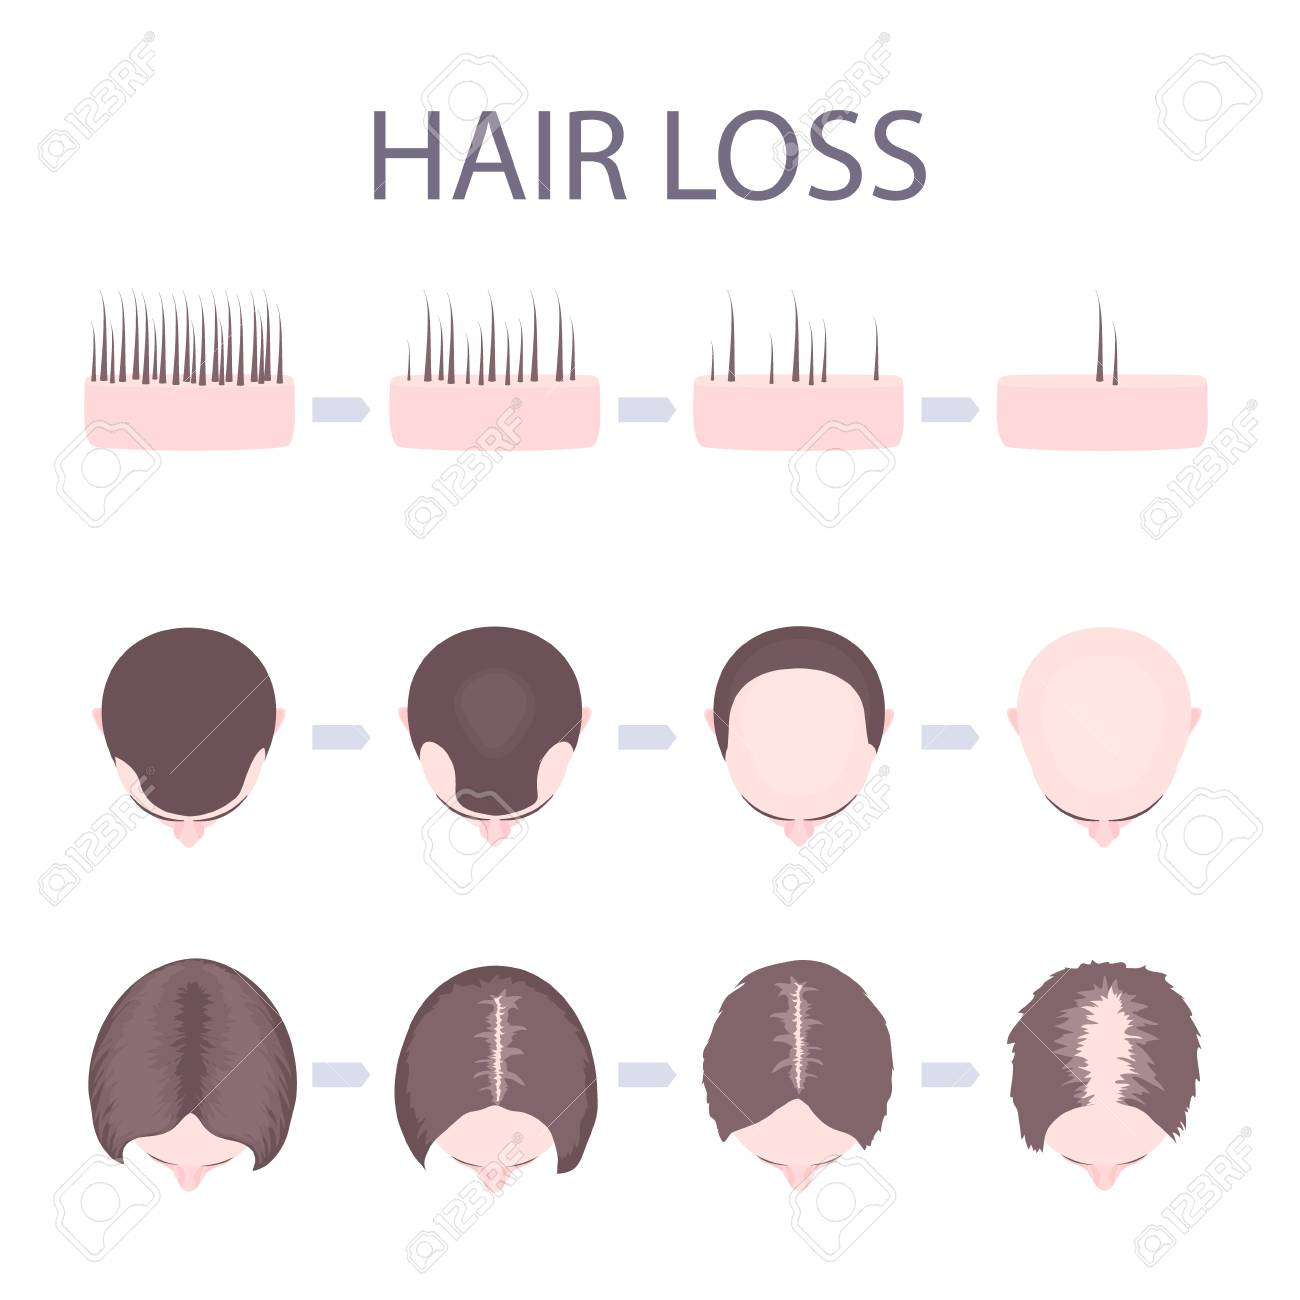 Male and female pattern hair loss set. Stages of baldness in men and women. Number of follicles on scalp in each step. Alopecia infographic medical vector template for clinics and diagnostics centres. - 95514985